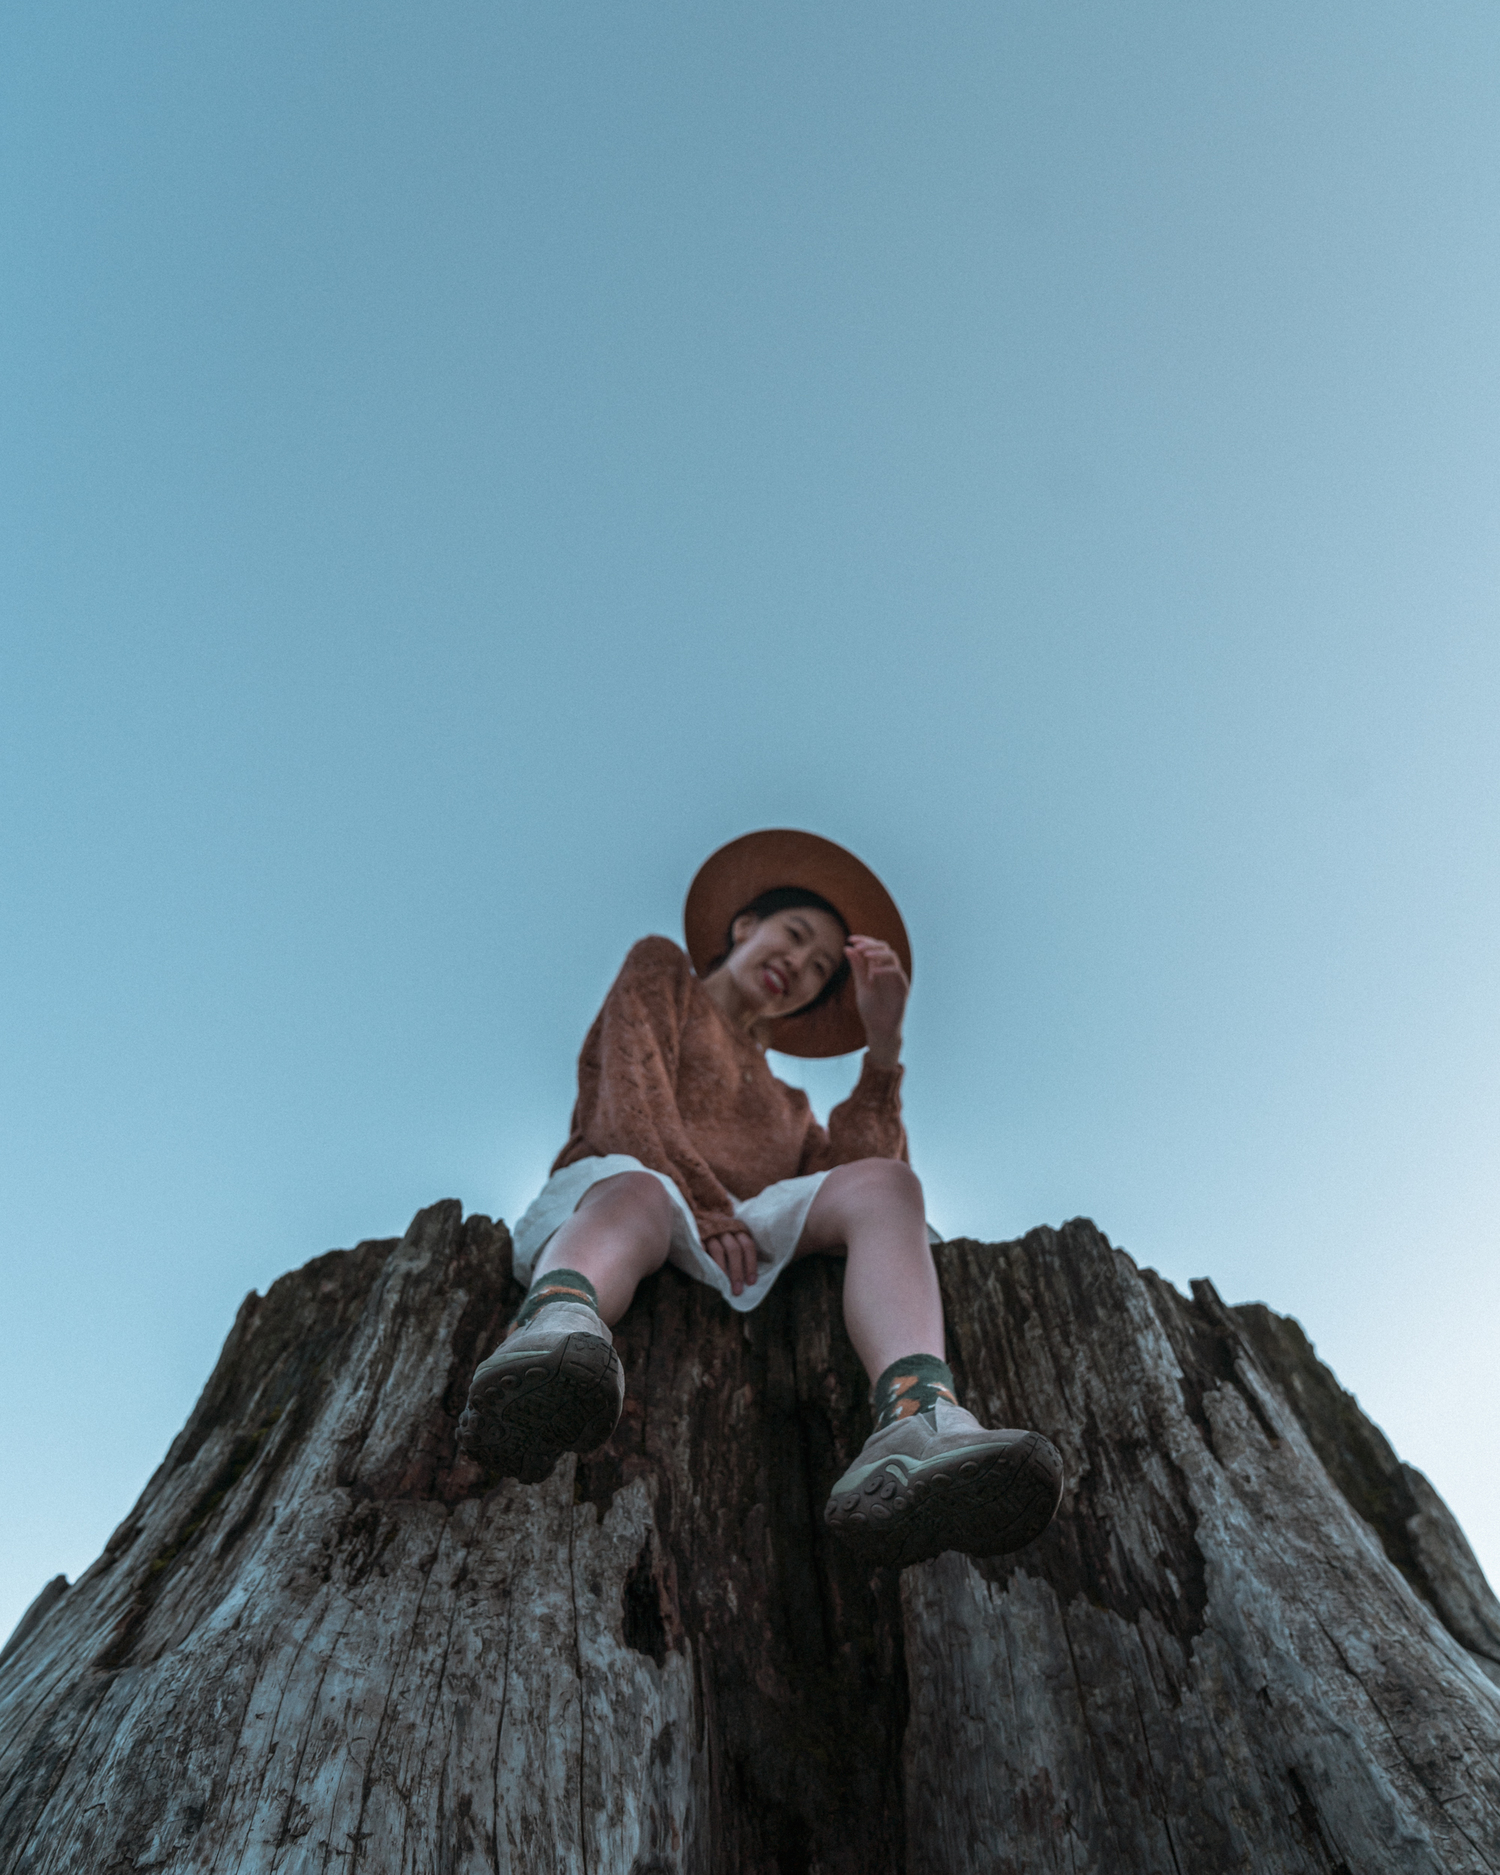 Girl sitting on log with feet dangling